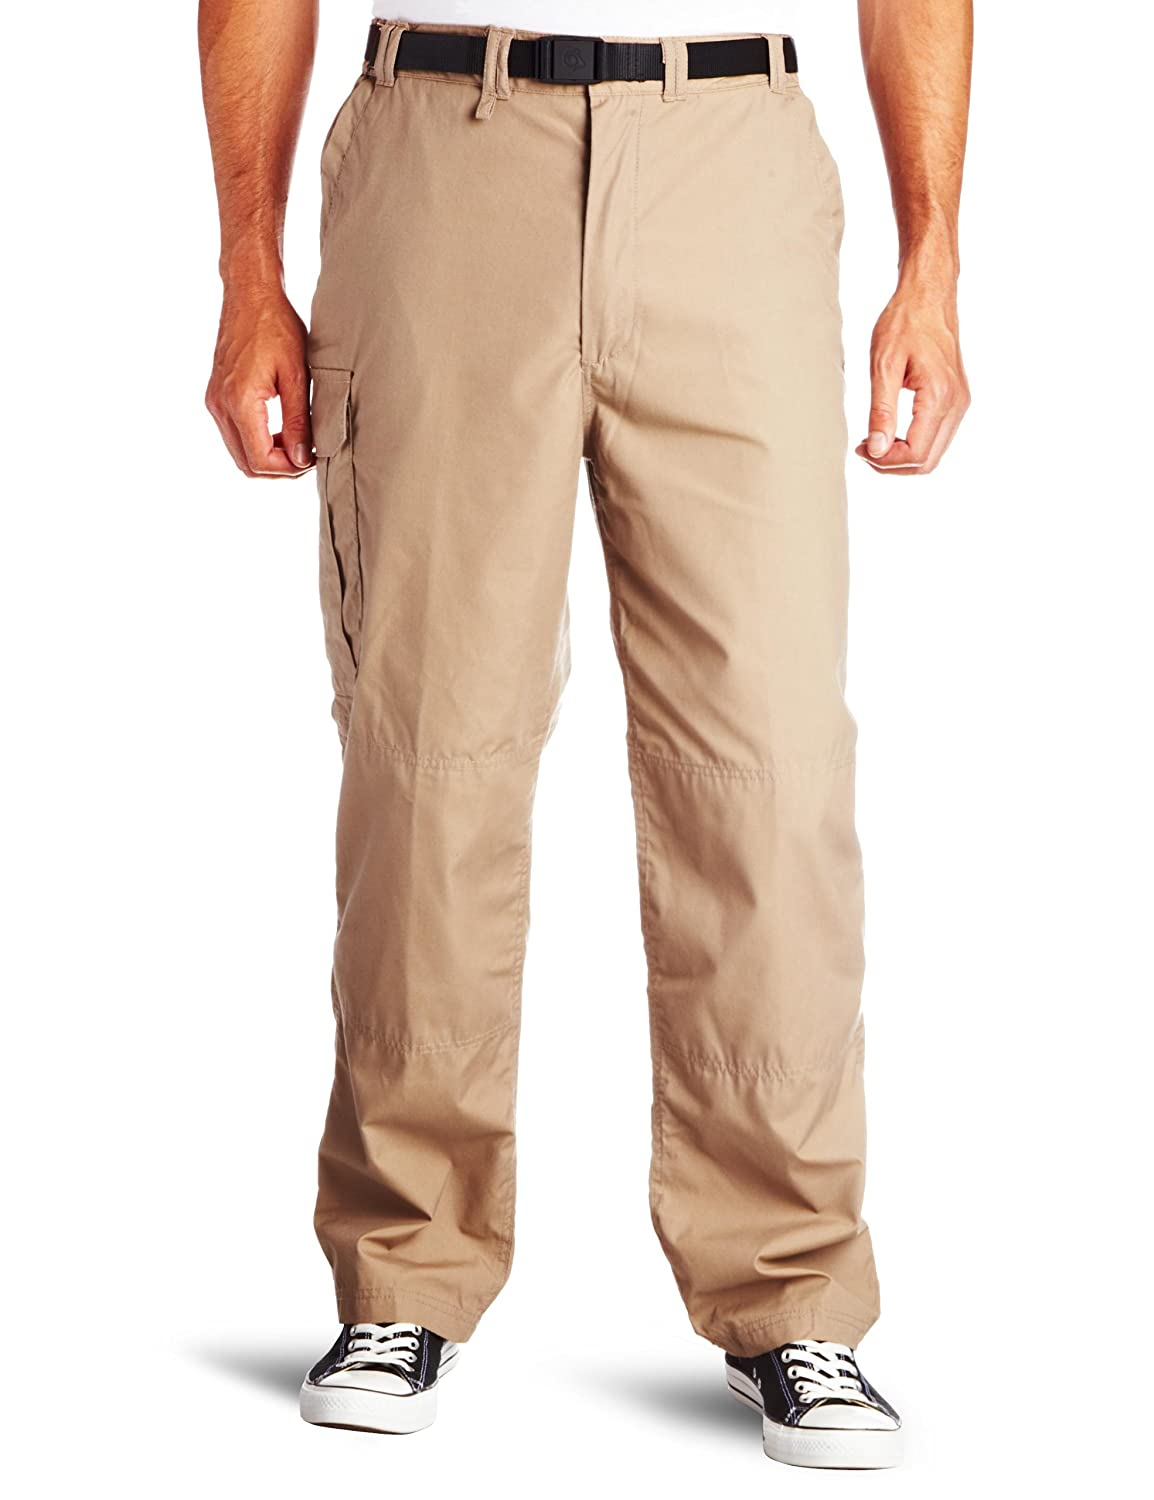 Craghoppers Mens Kiwi Walking Hiking Trousers Bark CMJ100 32R,34R,36R,38R,40R